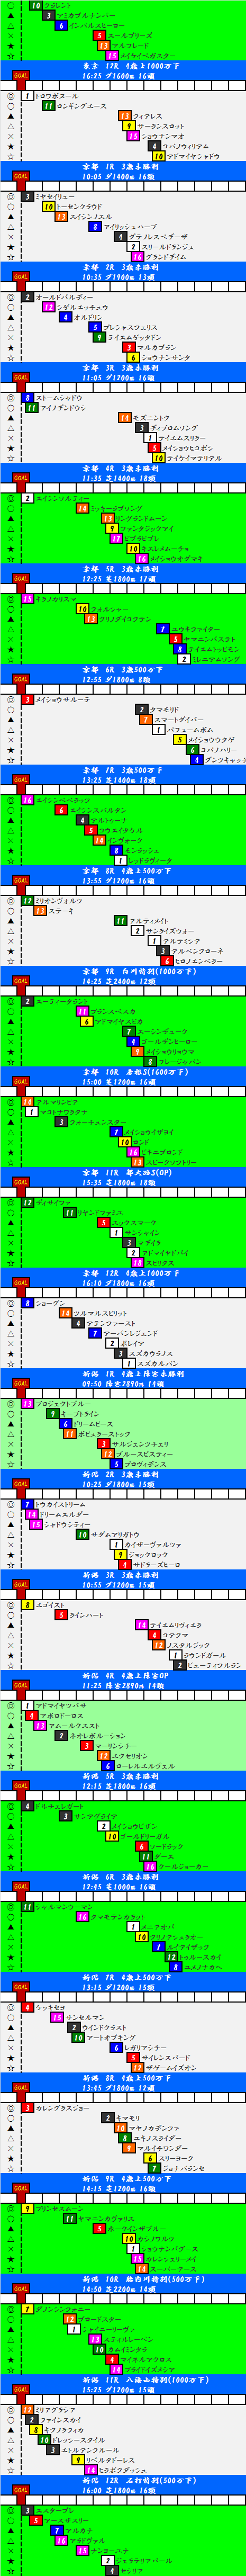 201405172.png